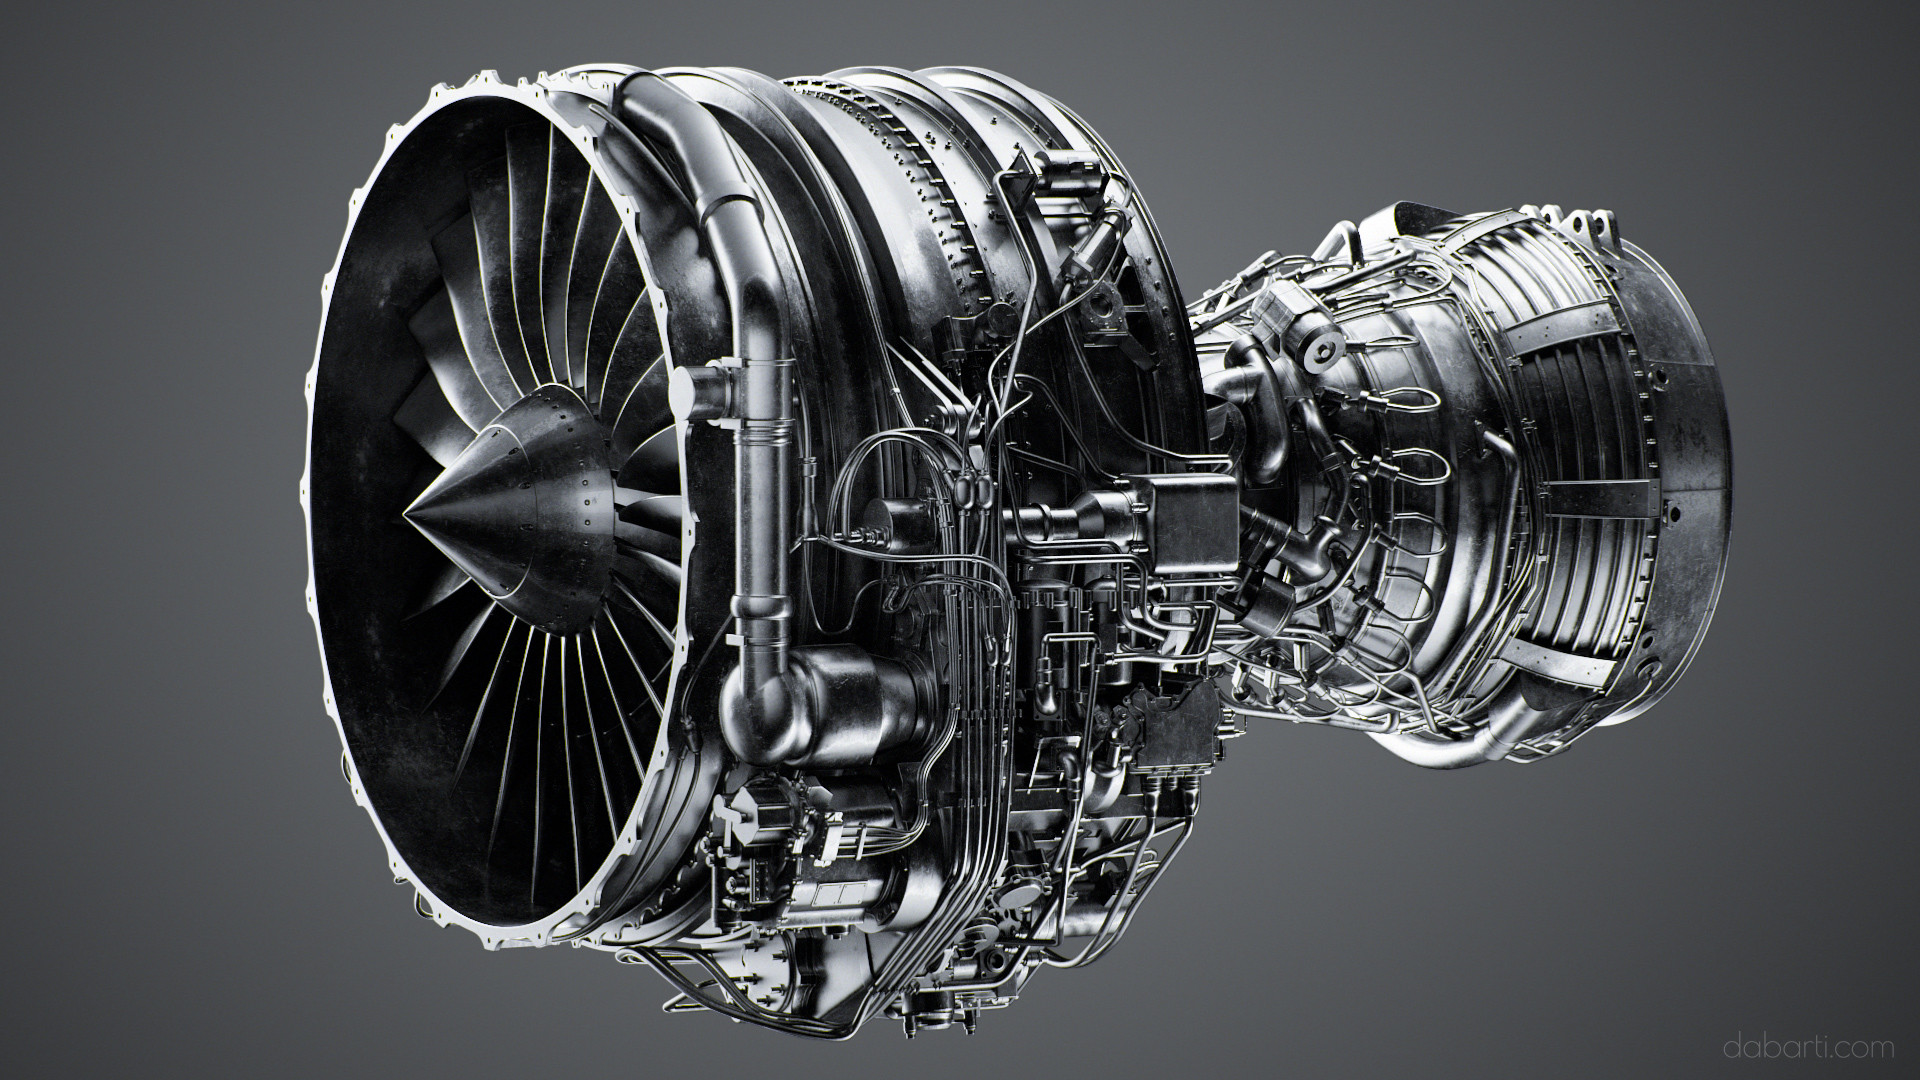 00023_jet_engine_cfm56_00000